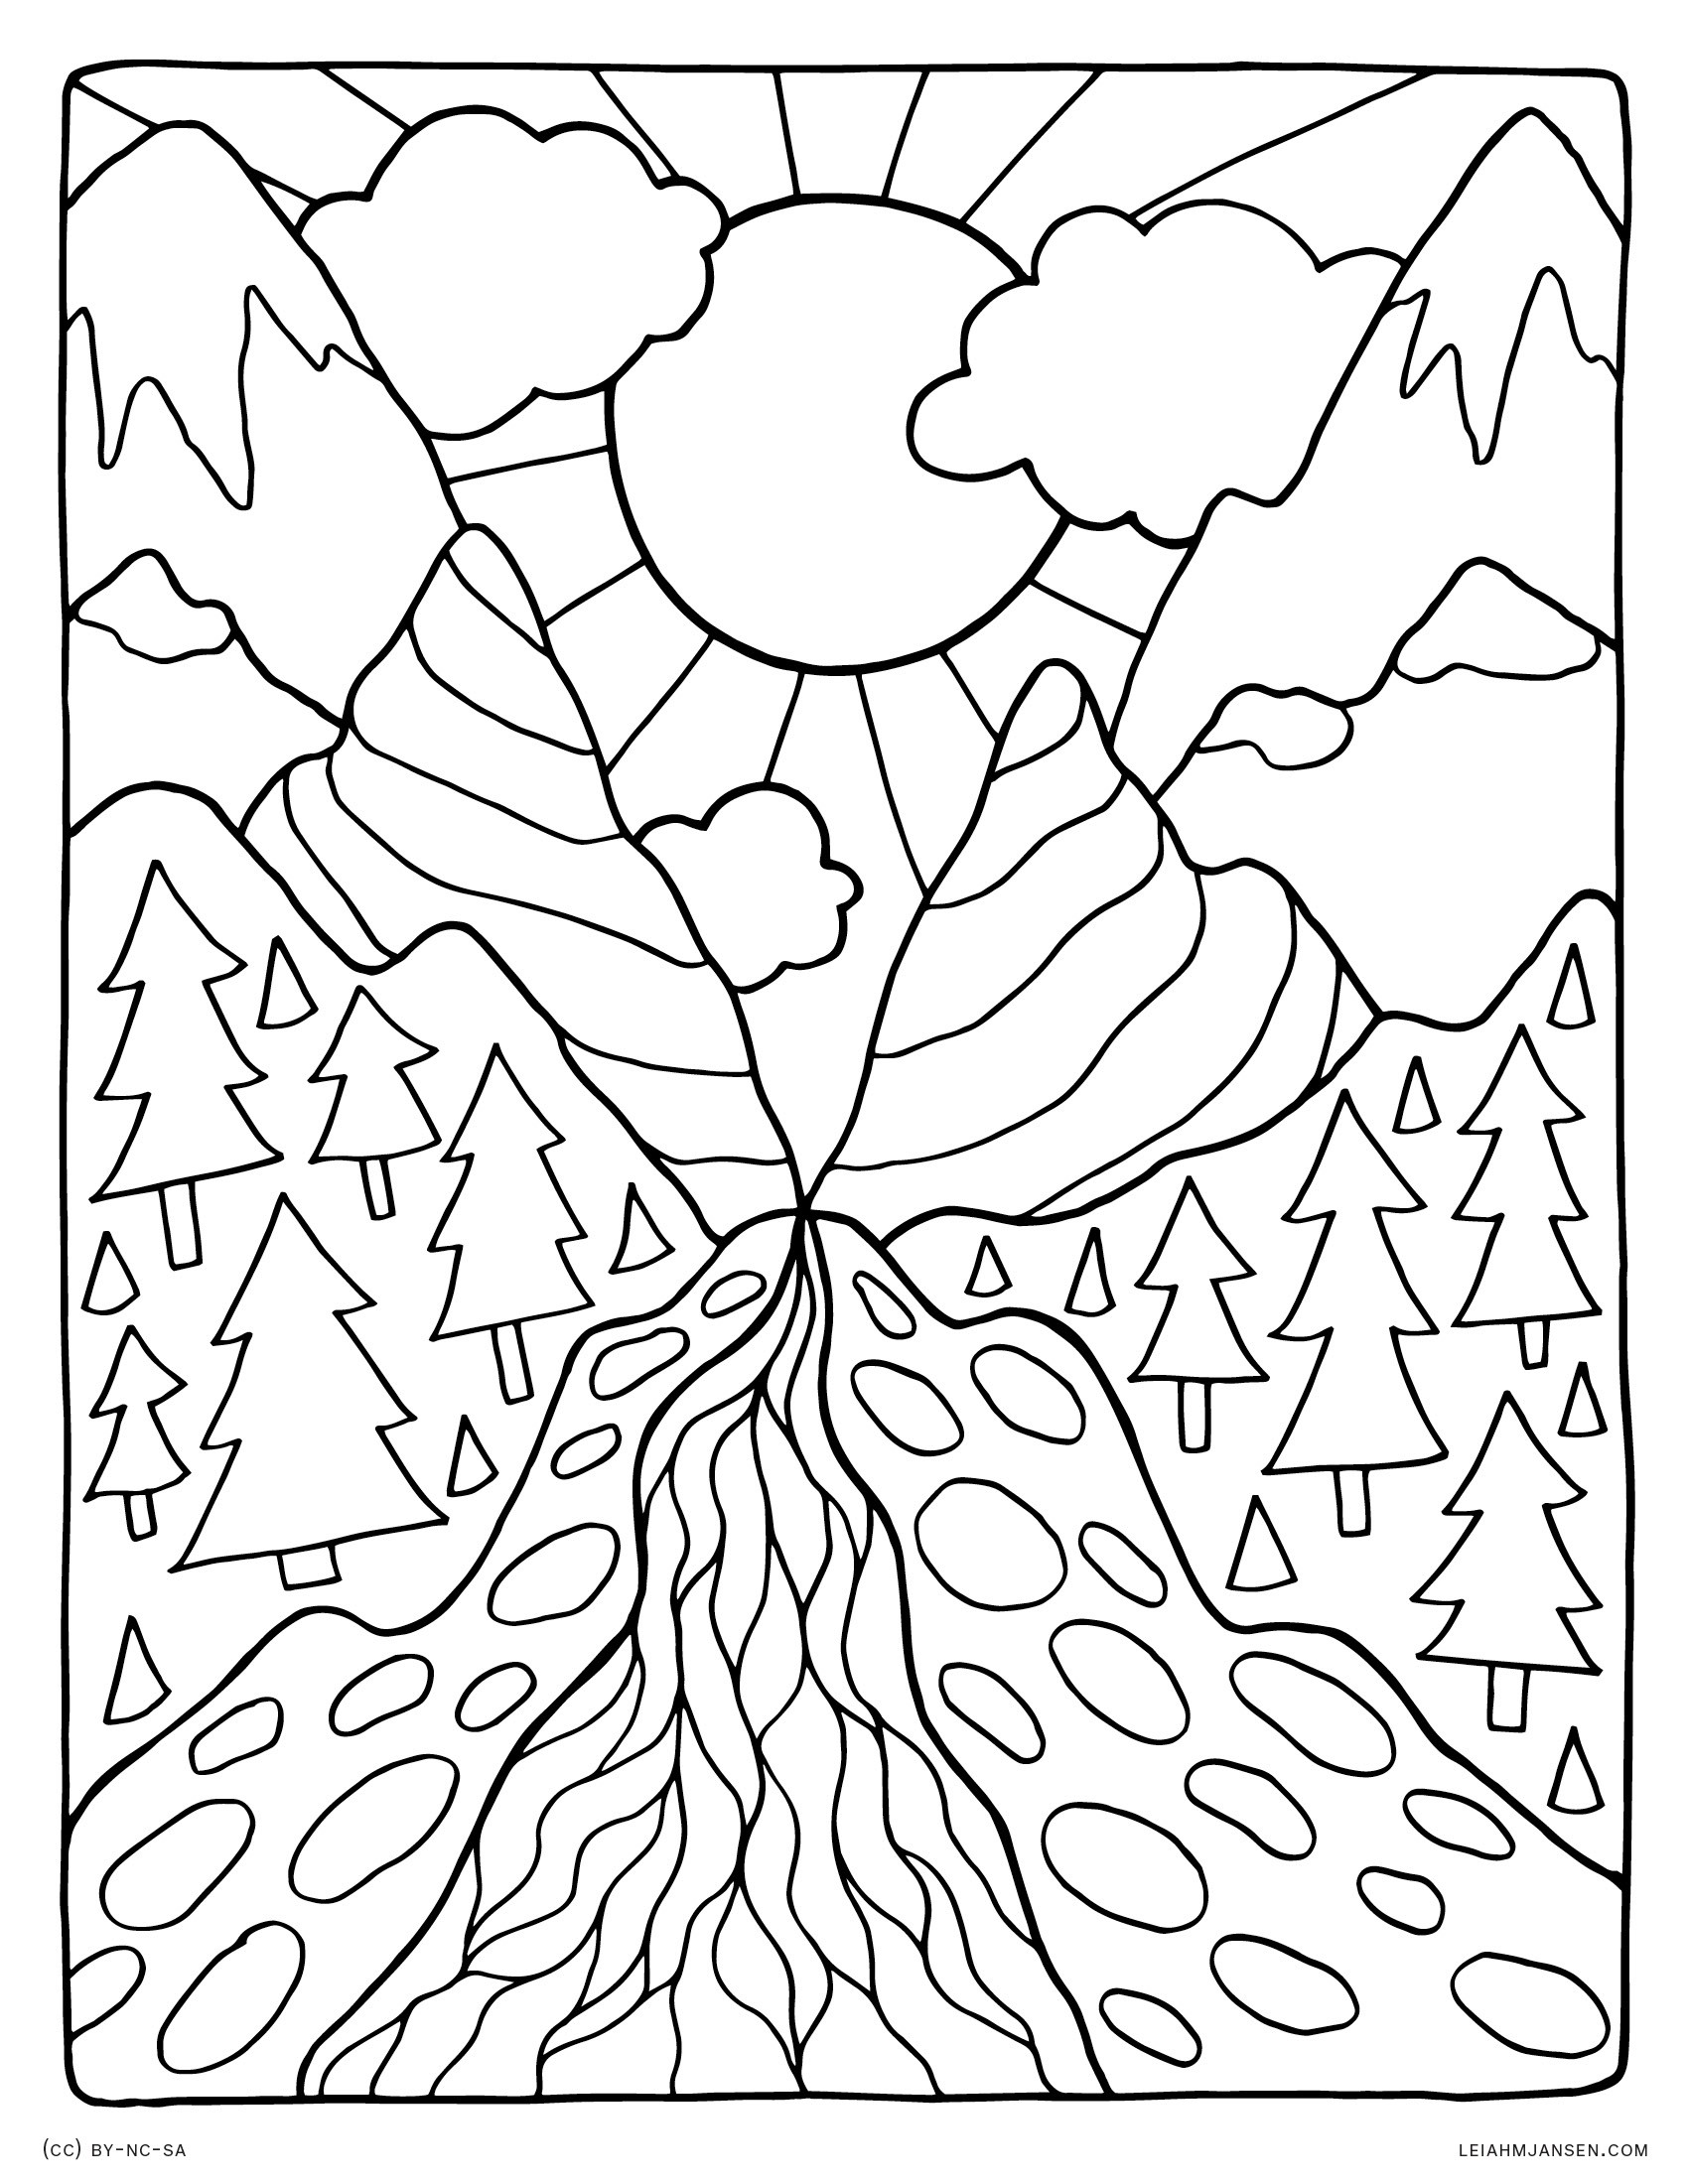 colouring pictures of nature nature coloring pages to download and print for free of colouring nature pictures